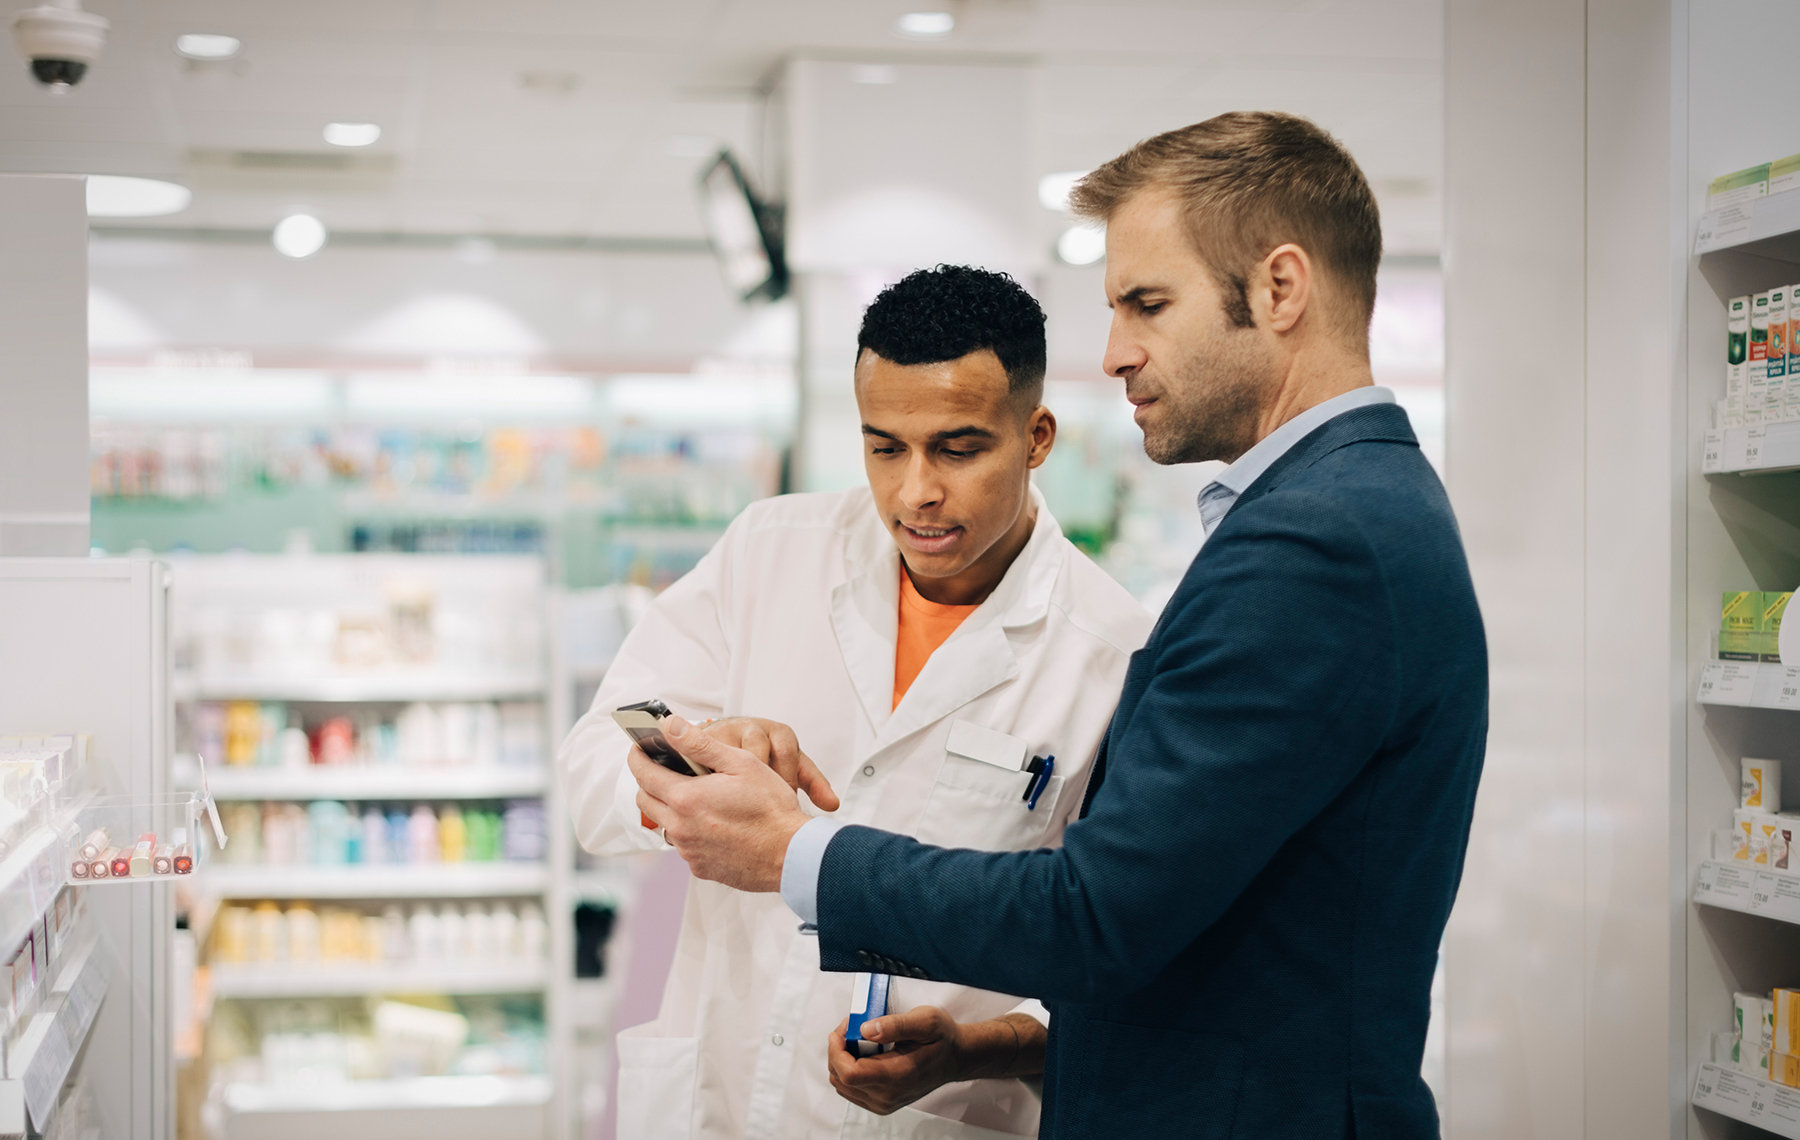 Pharmacist and a client looking at a celphone